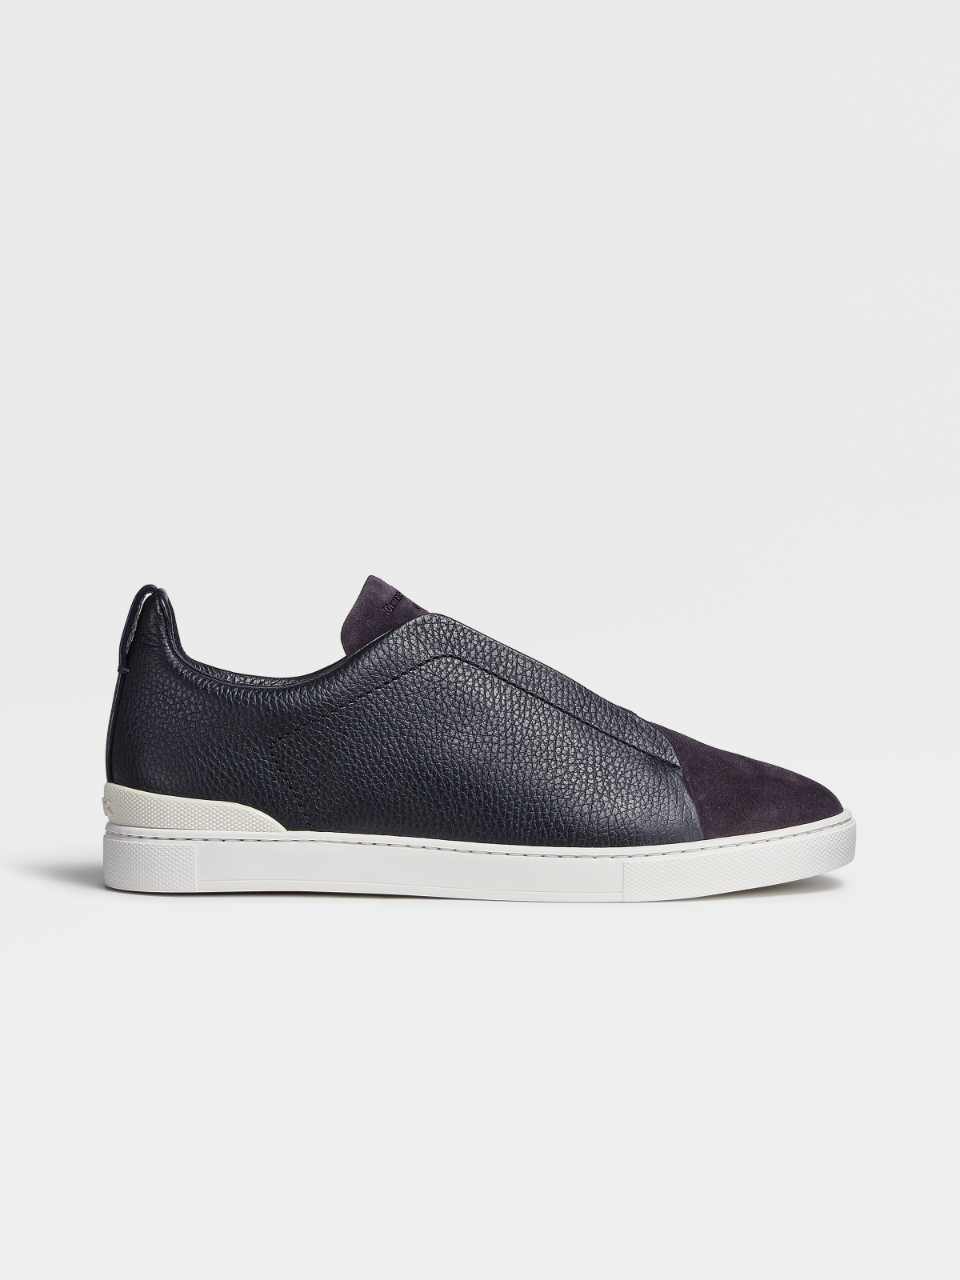 Grained Calfskin And Suede Triple Stitch Sneakers